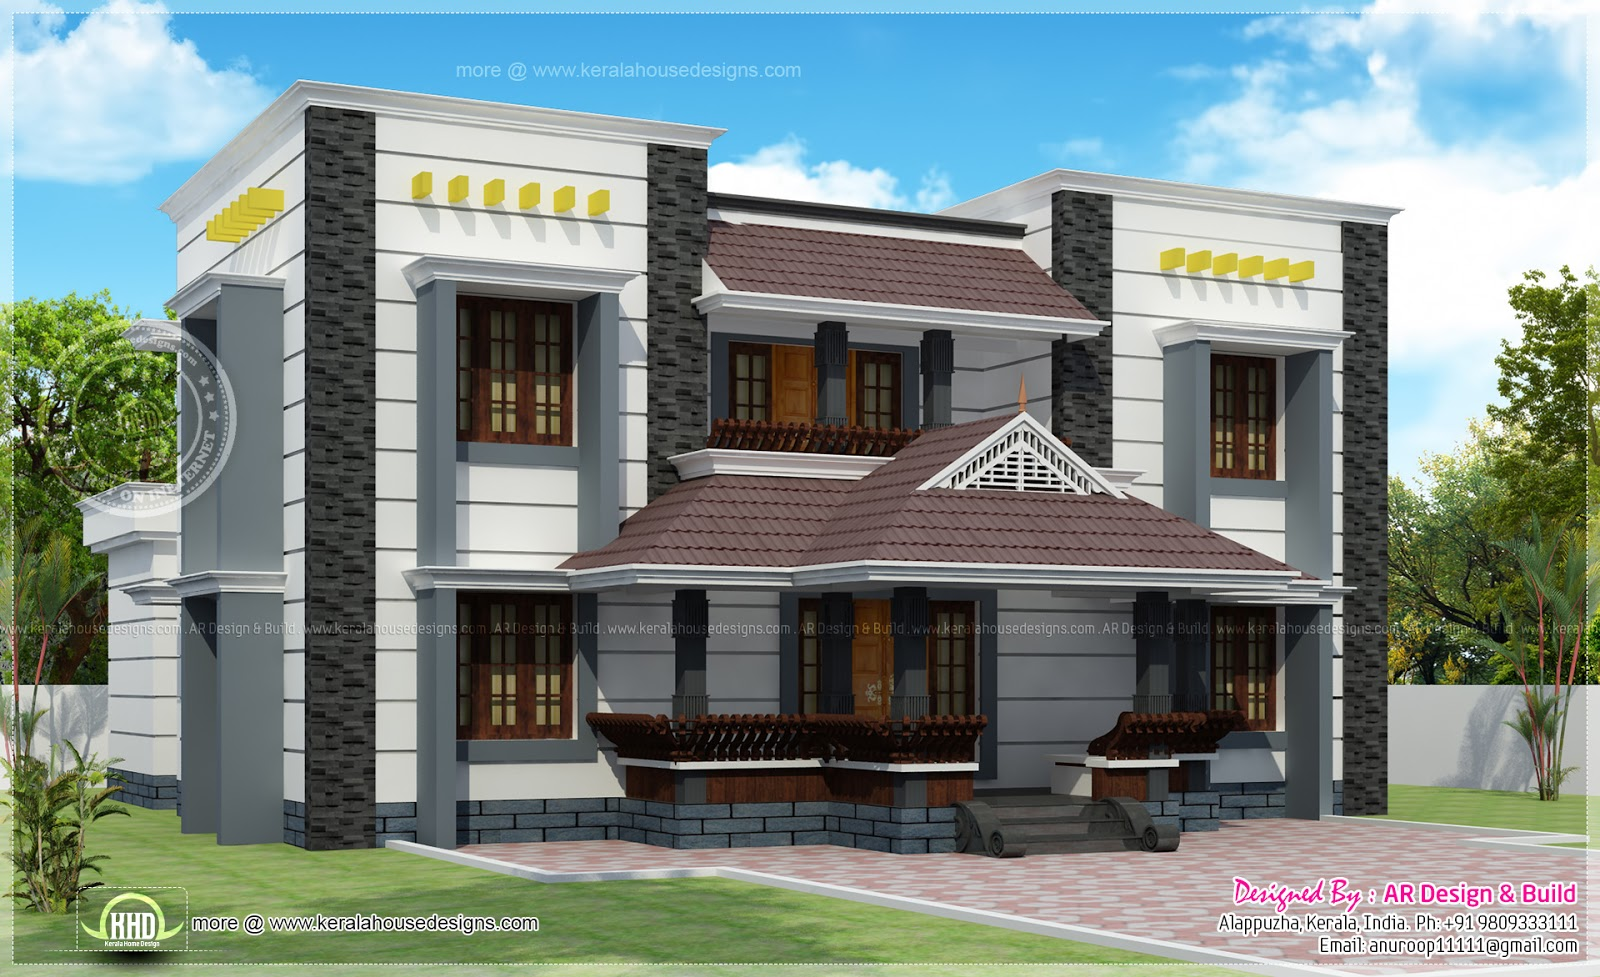 Kerala traditional mix residence elevation kerala home for Different elevations of house